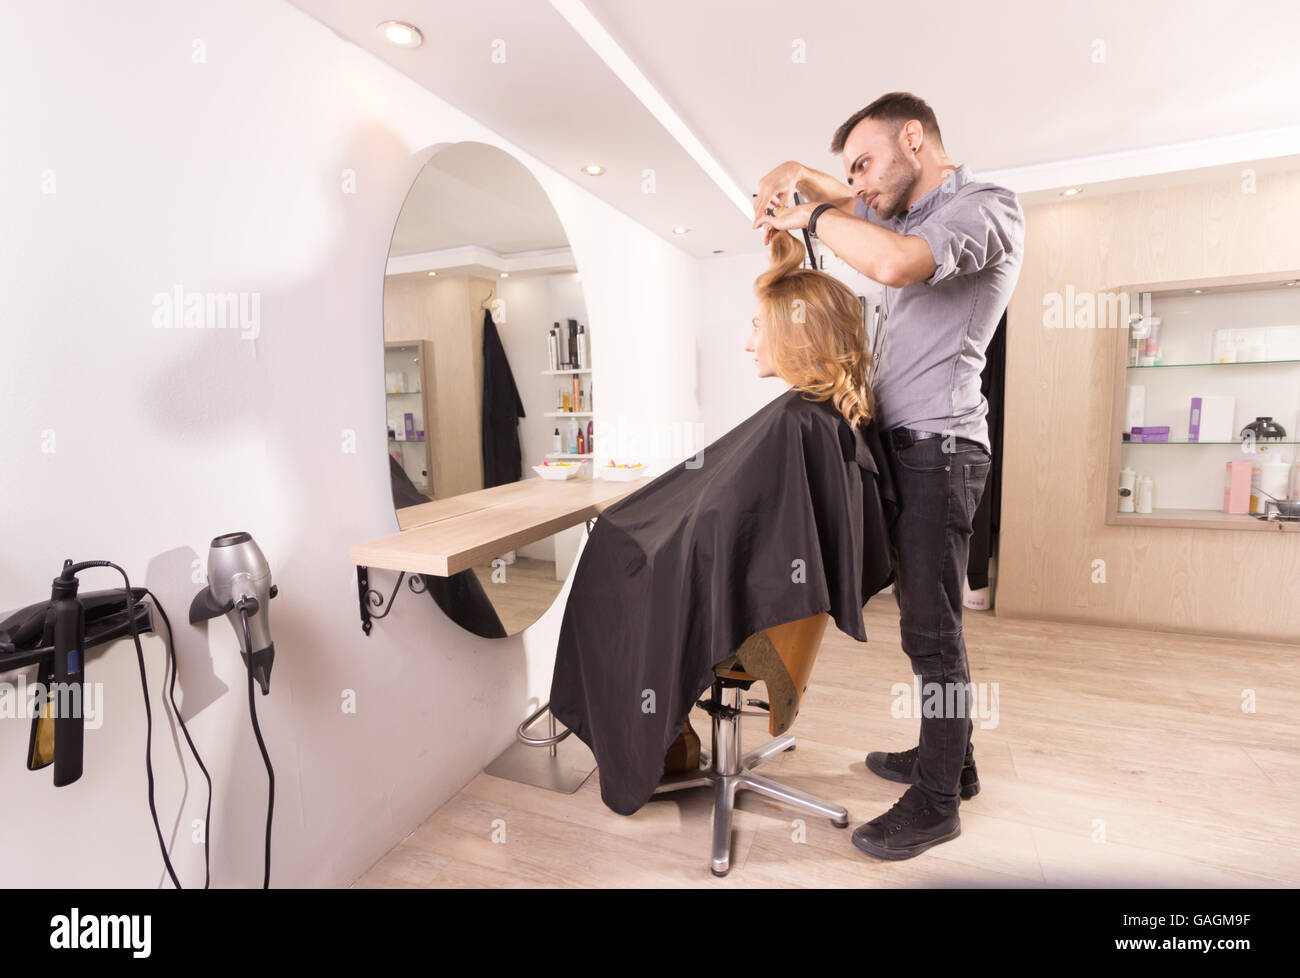 hairdresser salon woman hairstyle side view - Stock Image